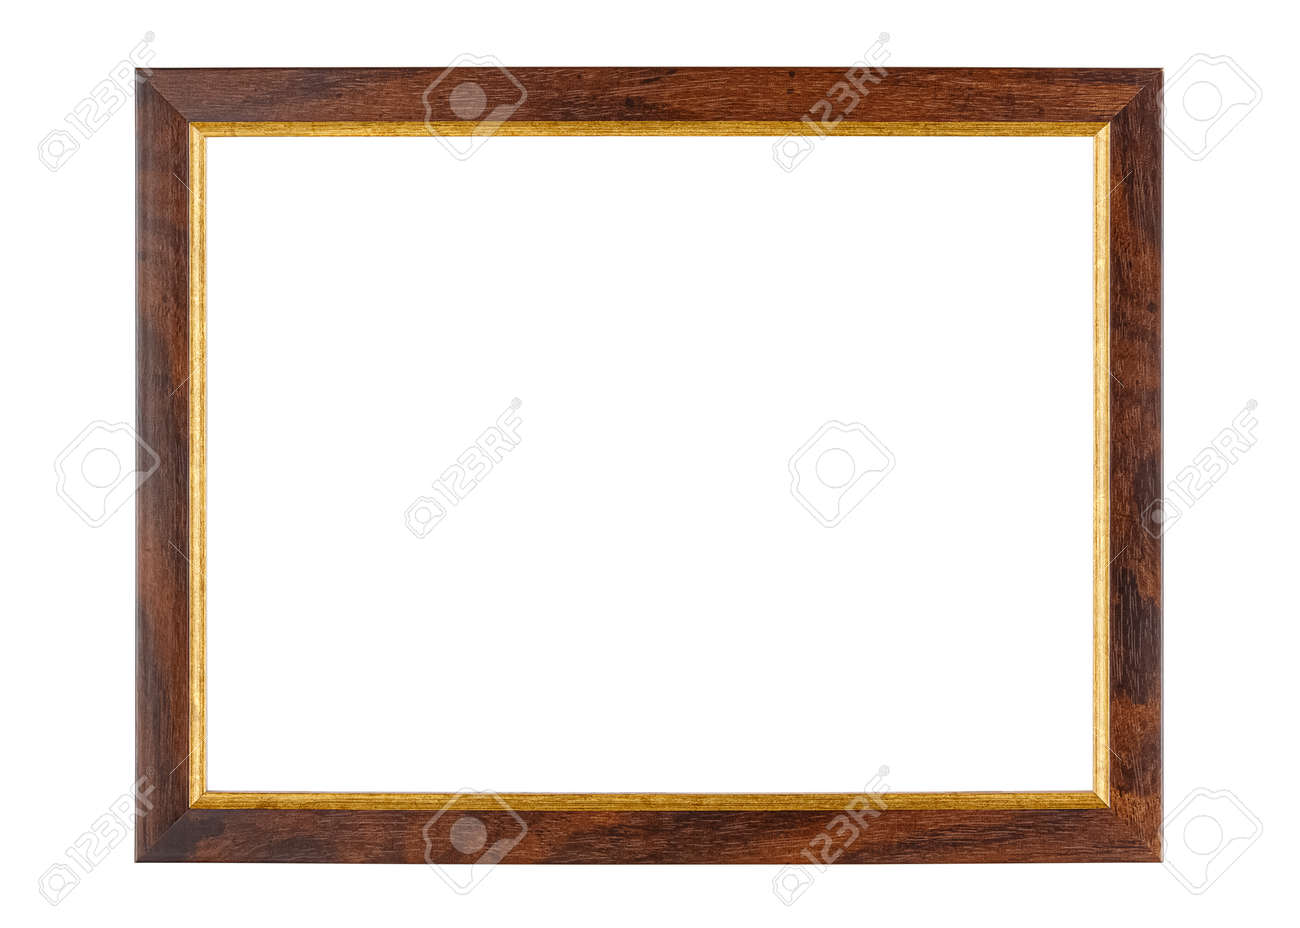 Empty dark brown wooden photo frame with golden border isolated on white background - 168431672